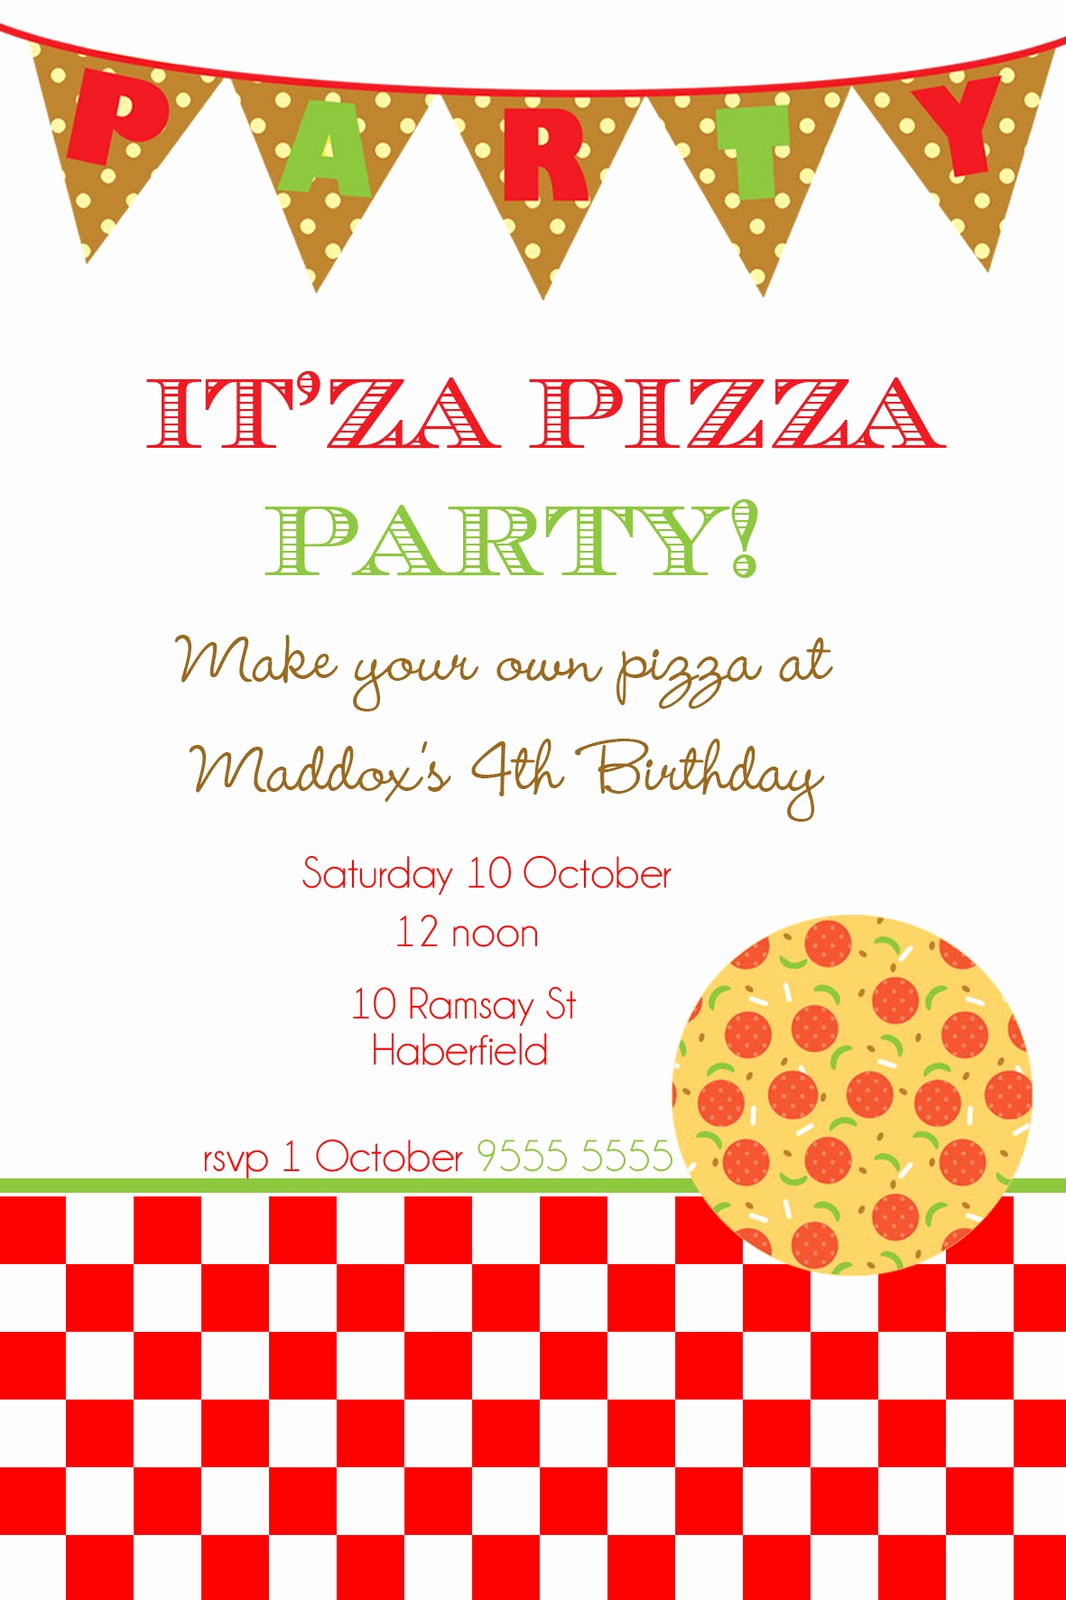 Pizza Party Invitation Template Inspirational Mon Tresor March 2011